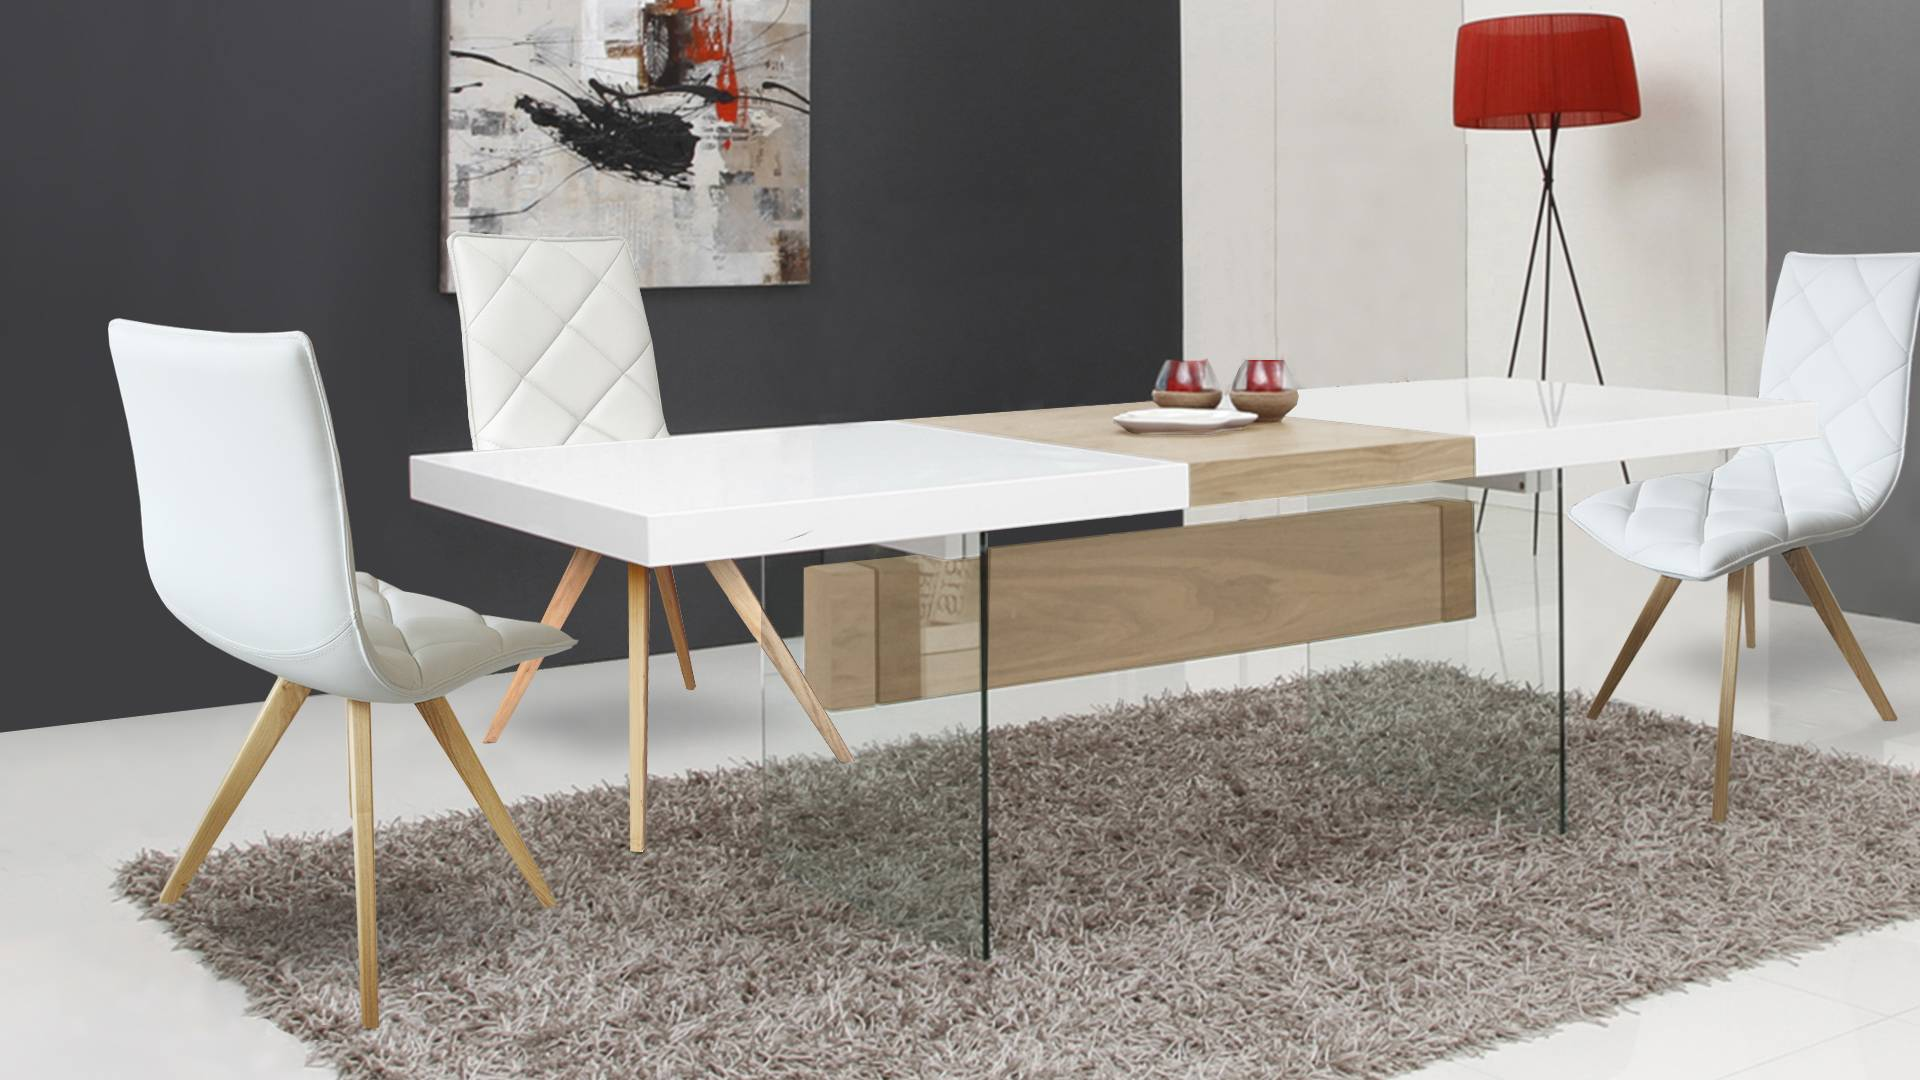 MobilierMoss Componga tu comedor lacado mate blanco - Friendly